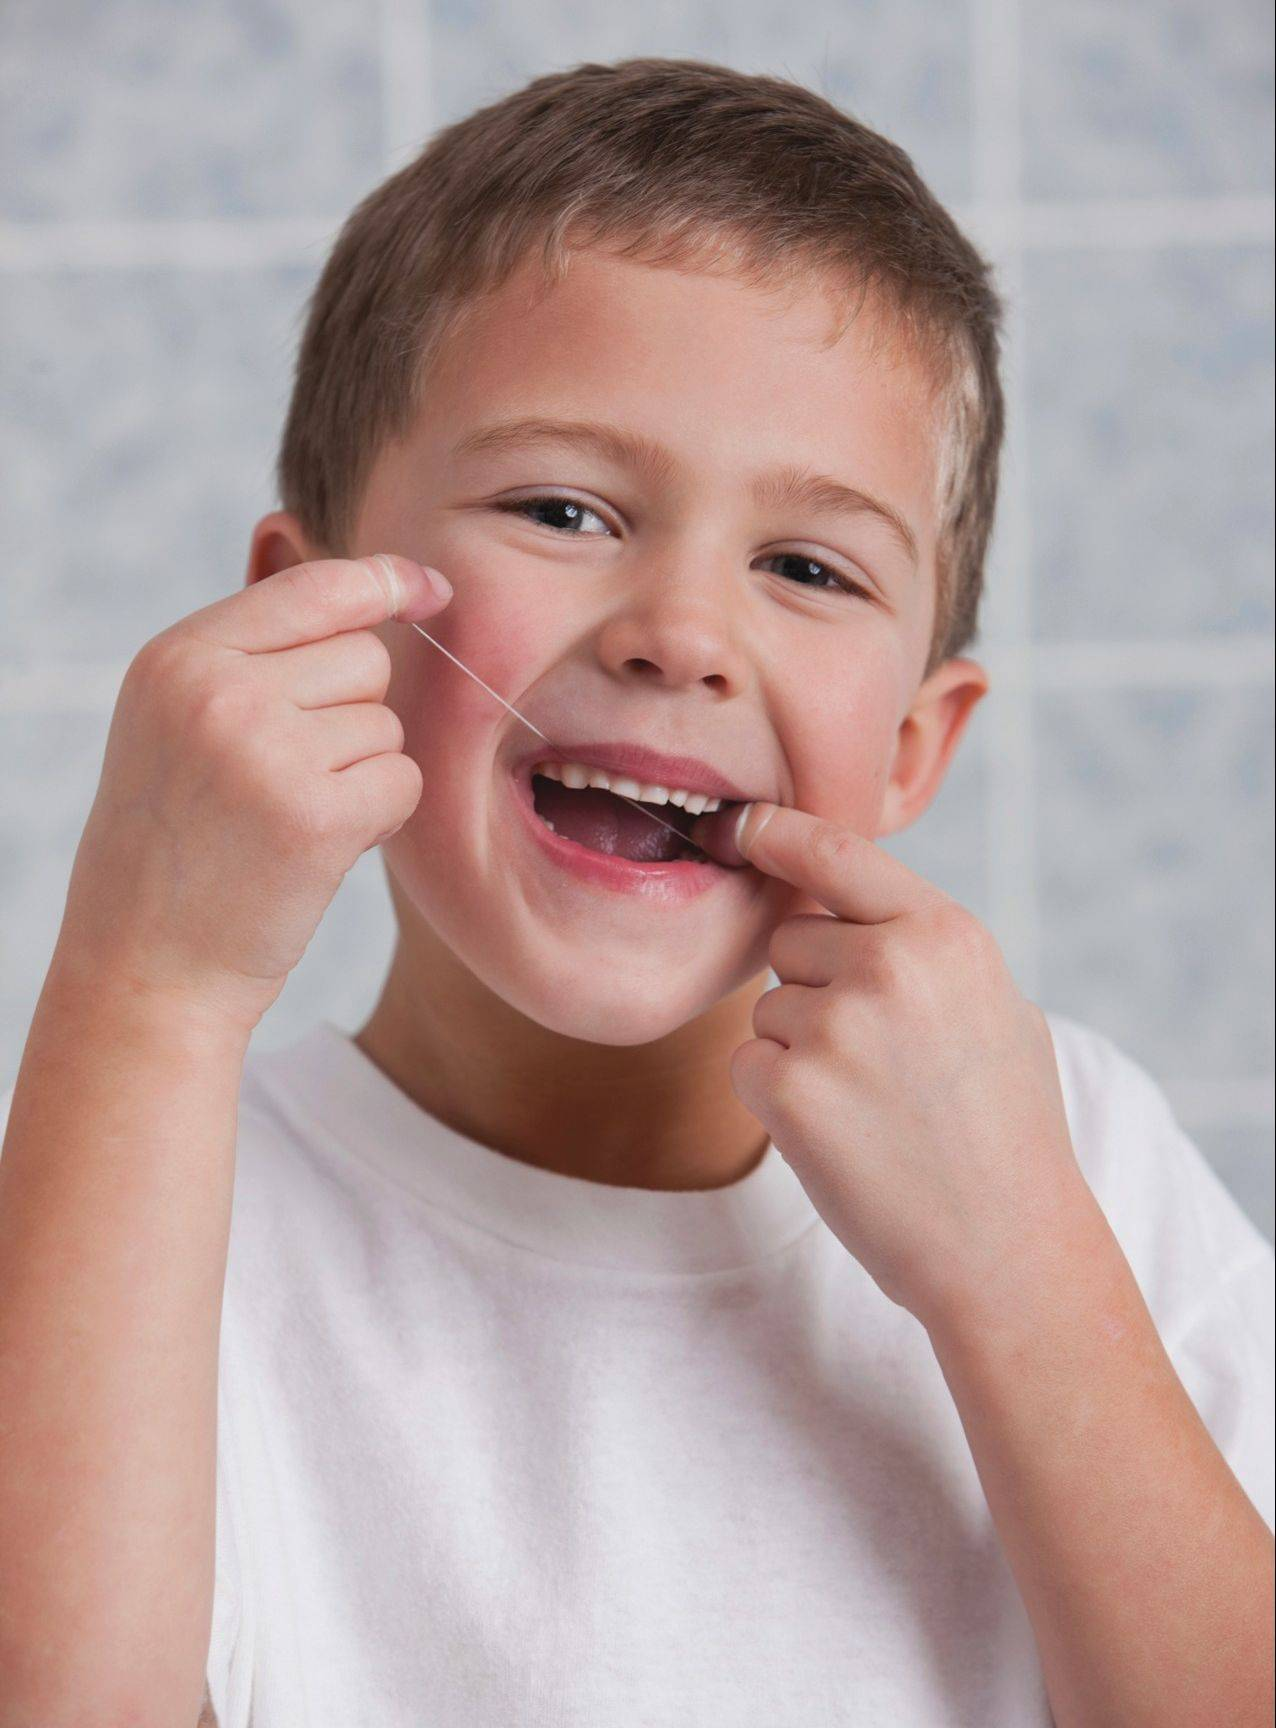 Children should learn that flossing is just as important as brushing.